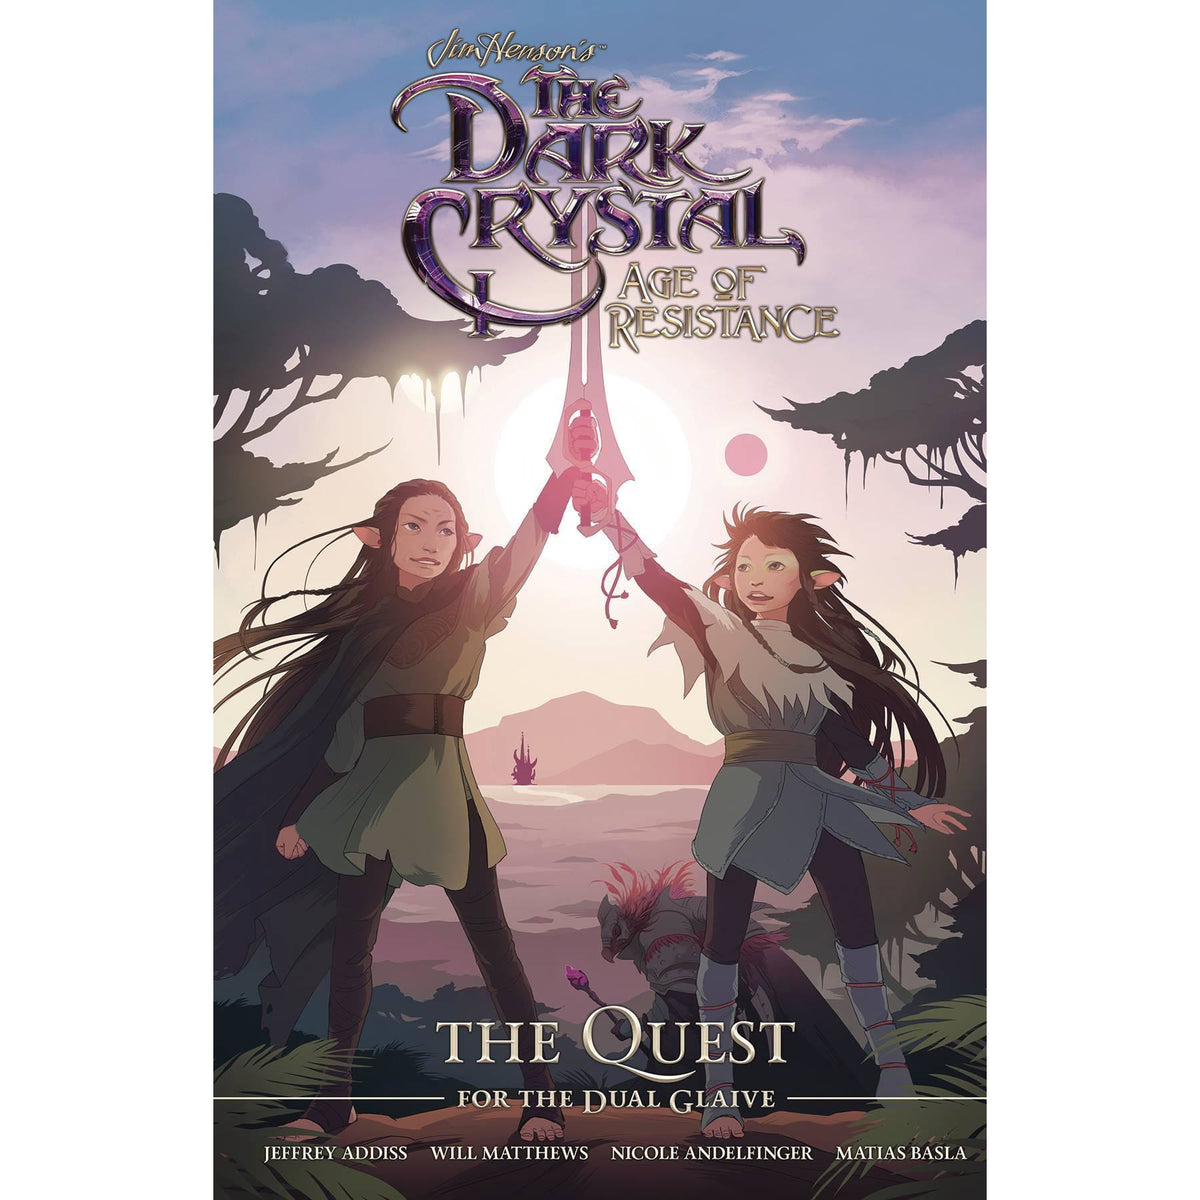 JIM HENSON DARK CRYSTAL RESISTANCE QUEST FOR DUAL GLAIVE